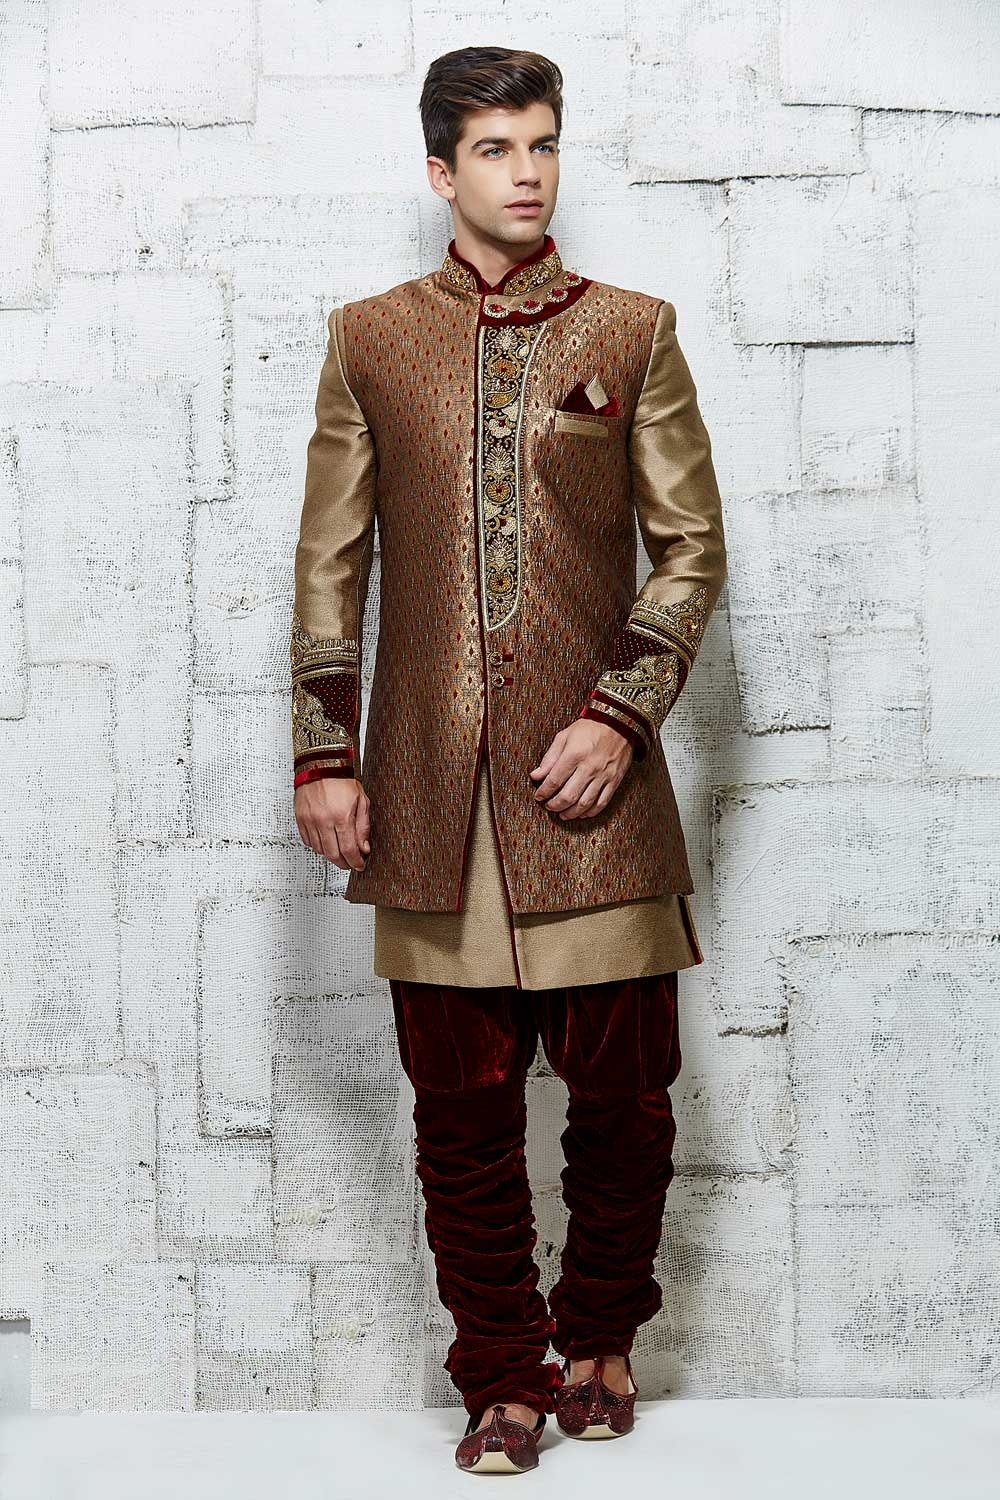 Going out for a wedding /party and you Donot have a good Designer Dress Donot worry visit Sanroh Creations Chattarpur  near Tivoli Garden at 9910424504 and Get DESIGNER LEHENGAS SHERWANI SUITS INDO WESTERN SAREES SUITS TUXEDO ON Rent and Save Money Save Time Look Good in All the Parties /weddings www.facebook.com/sanrohcreations